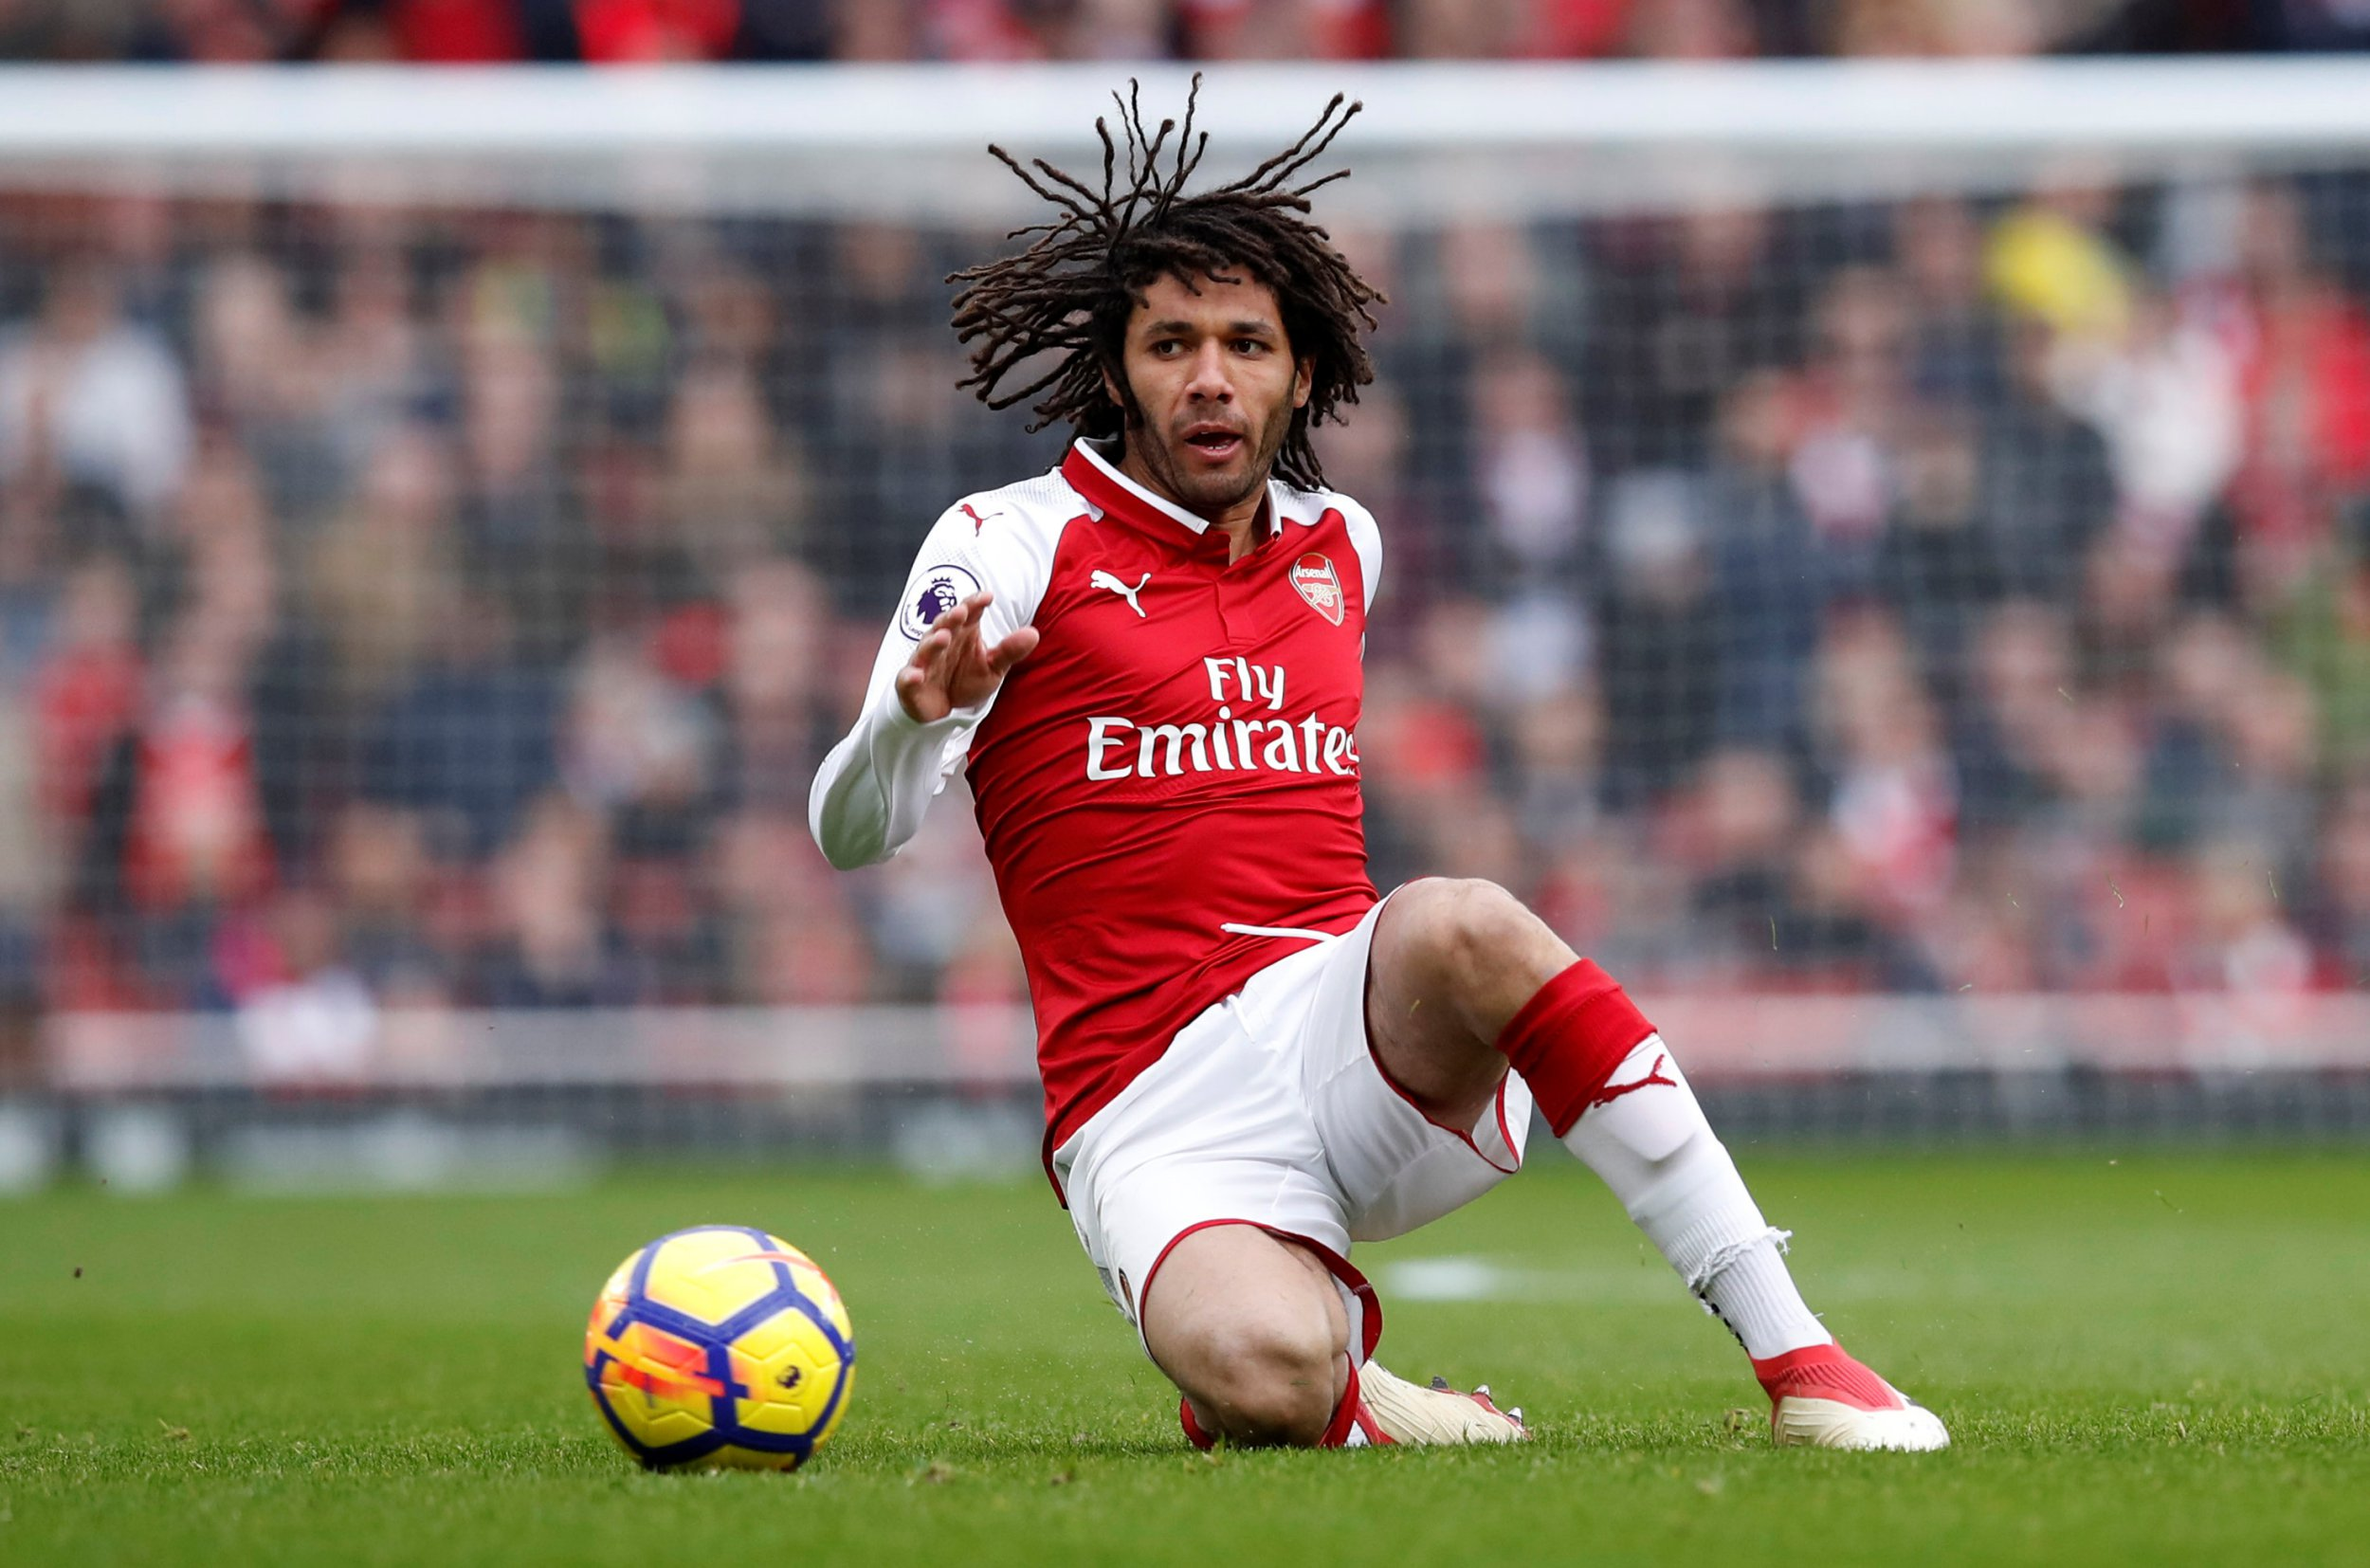 """Soccer Football - Premier League - Arsenal vs Watford - Emirates Stadium, London, Britain - March 11, 2018 Arsenal's Mohamed Elneny REUTERS/Eddie Keogh EDITORIAL USE ONLY. No use with unauthorized audio, video, data, fixture lists, club/league logos or """"live"""" services. Online in-match use limited to 75 images, no video emulation. No use in betting, games or single club/league/player publications. Please contact your account representative for further details."""